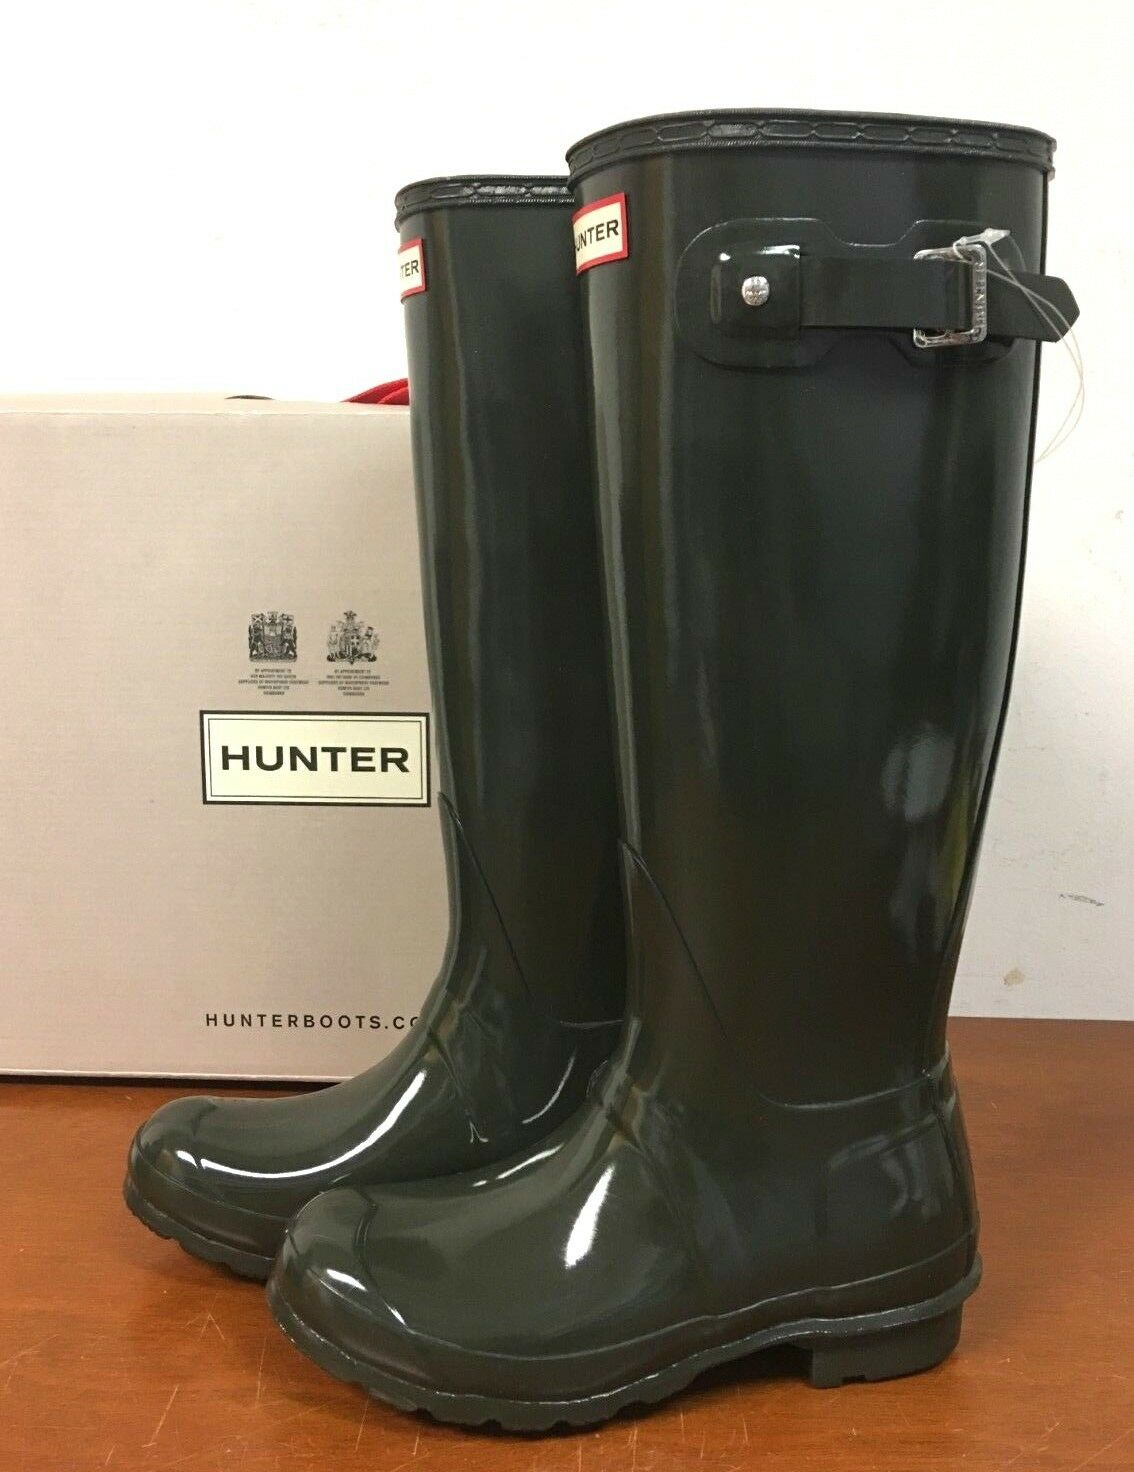 NEW Hunter Original Tall Rain Boots, SIZE 6 - Dark Olive - 8N_31